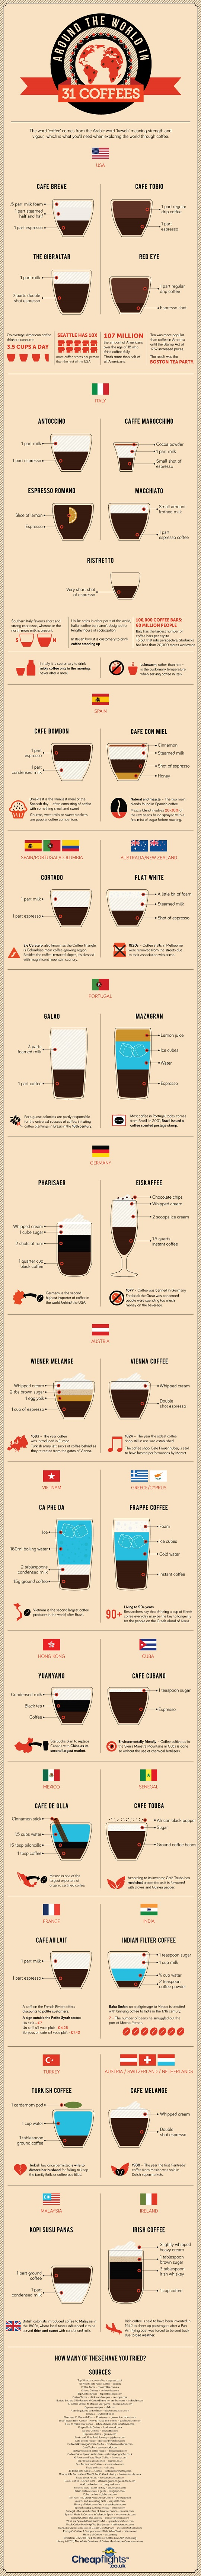 around-the-world-in-31-coffees